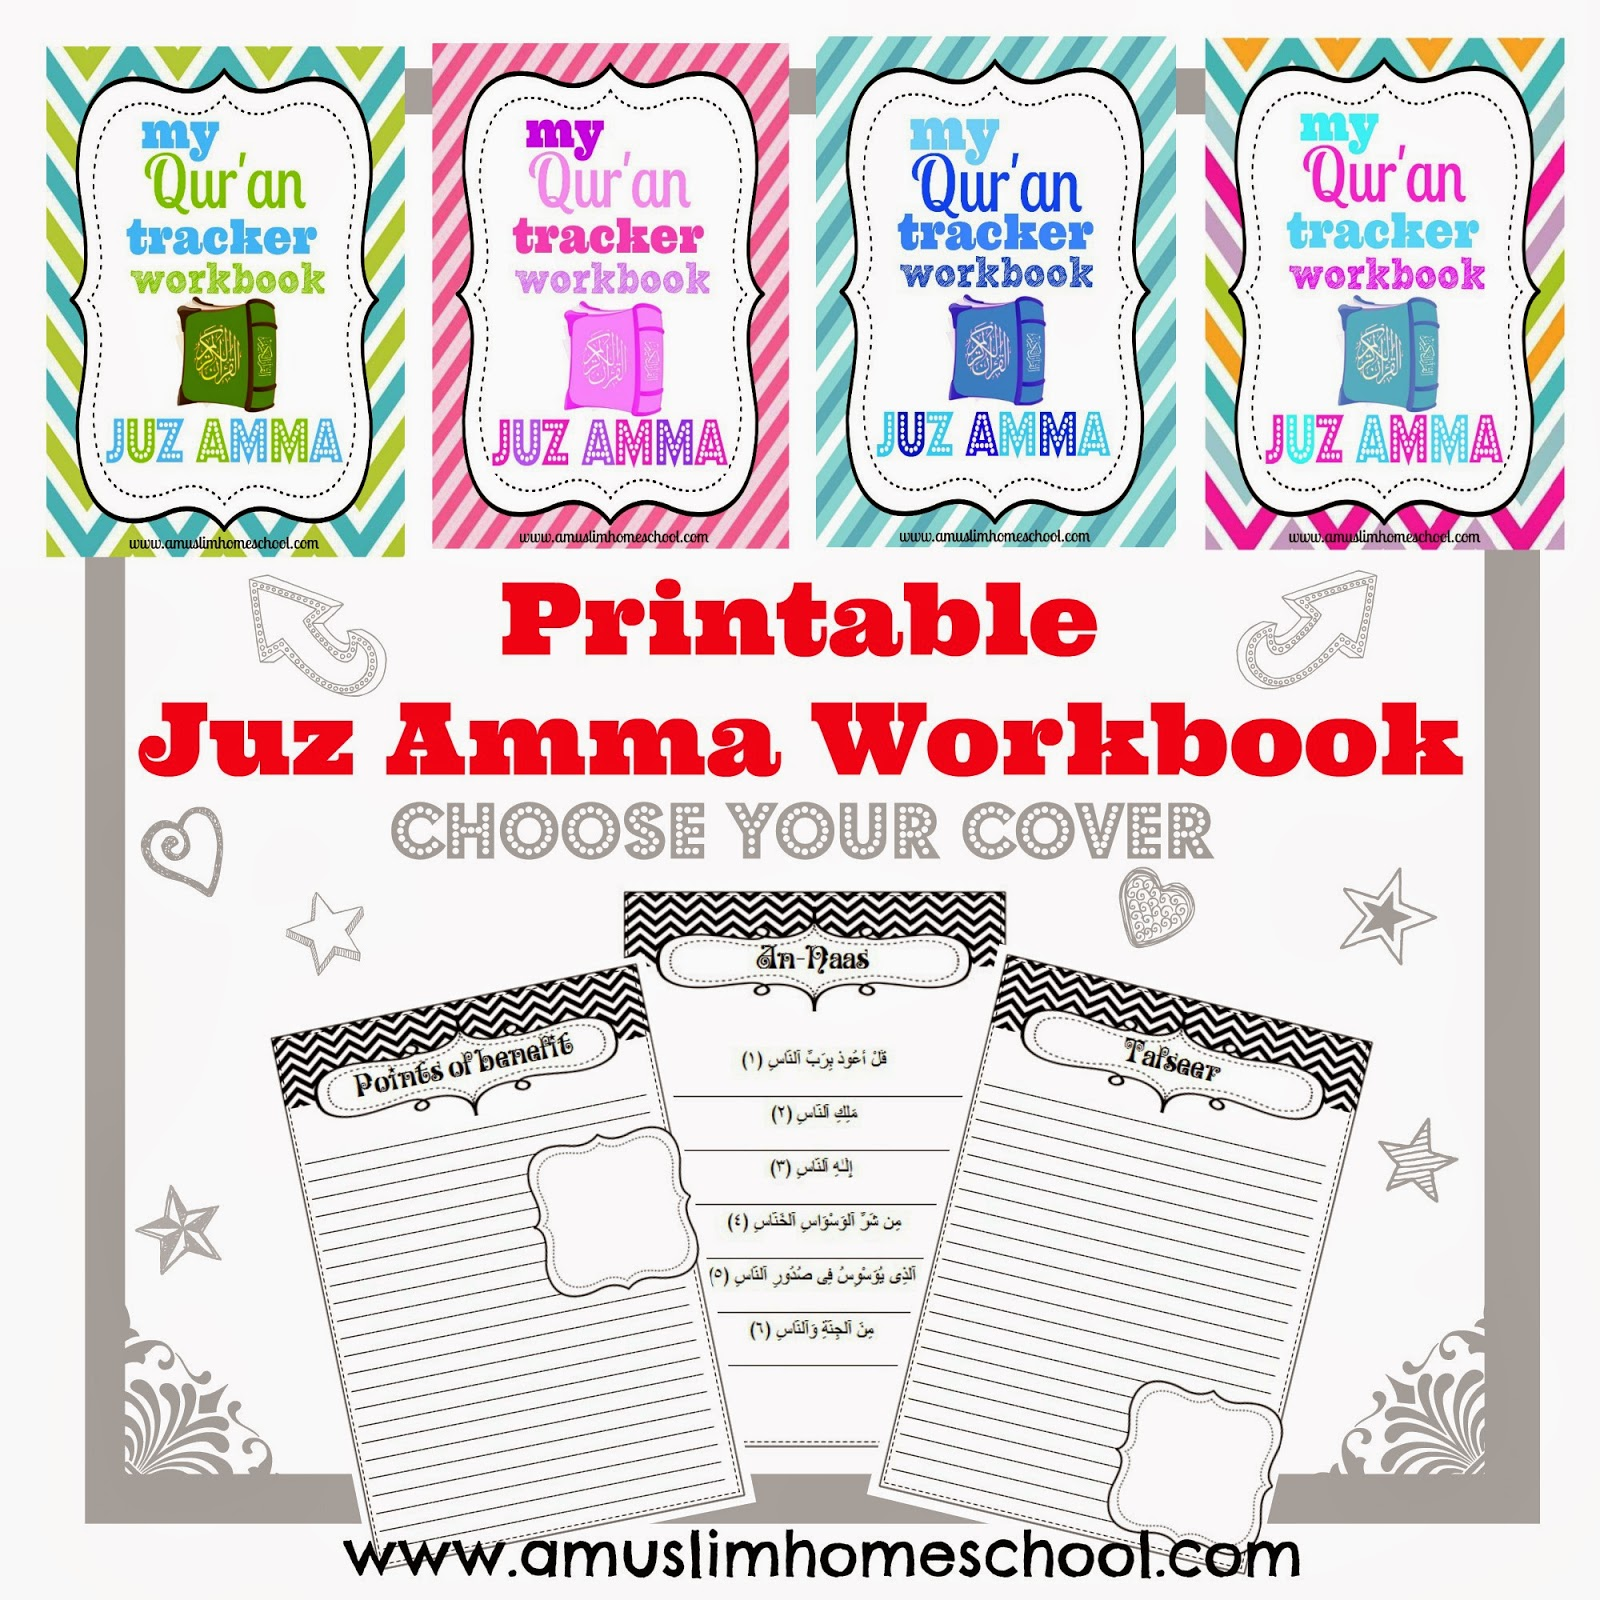 Juz Amma printable workbook